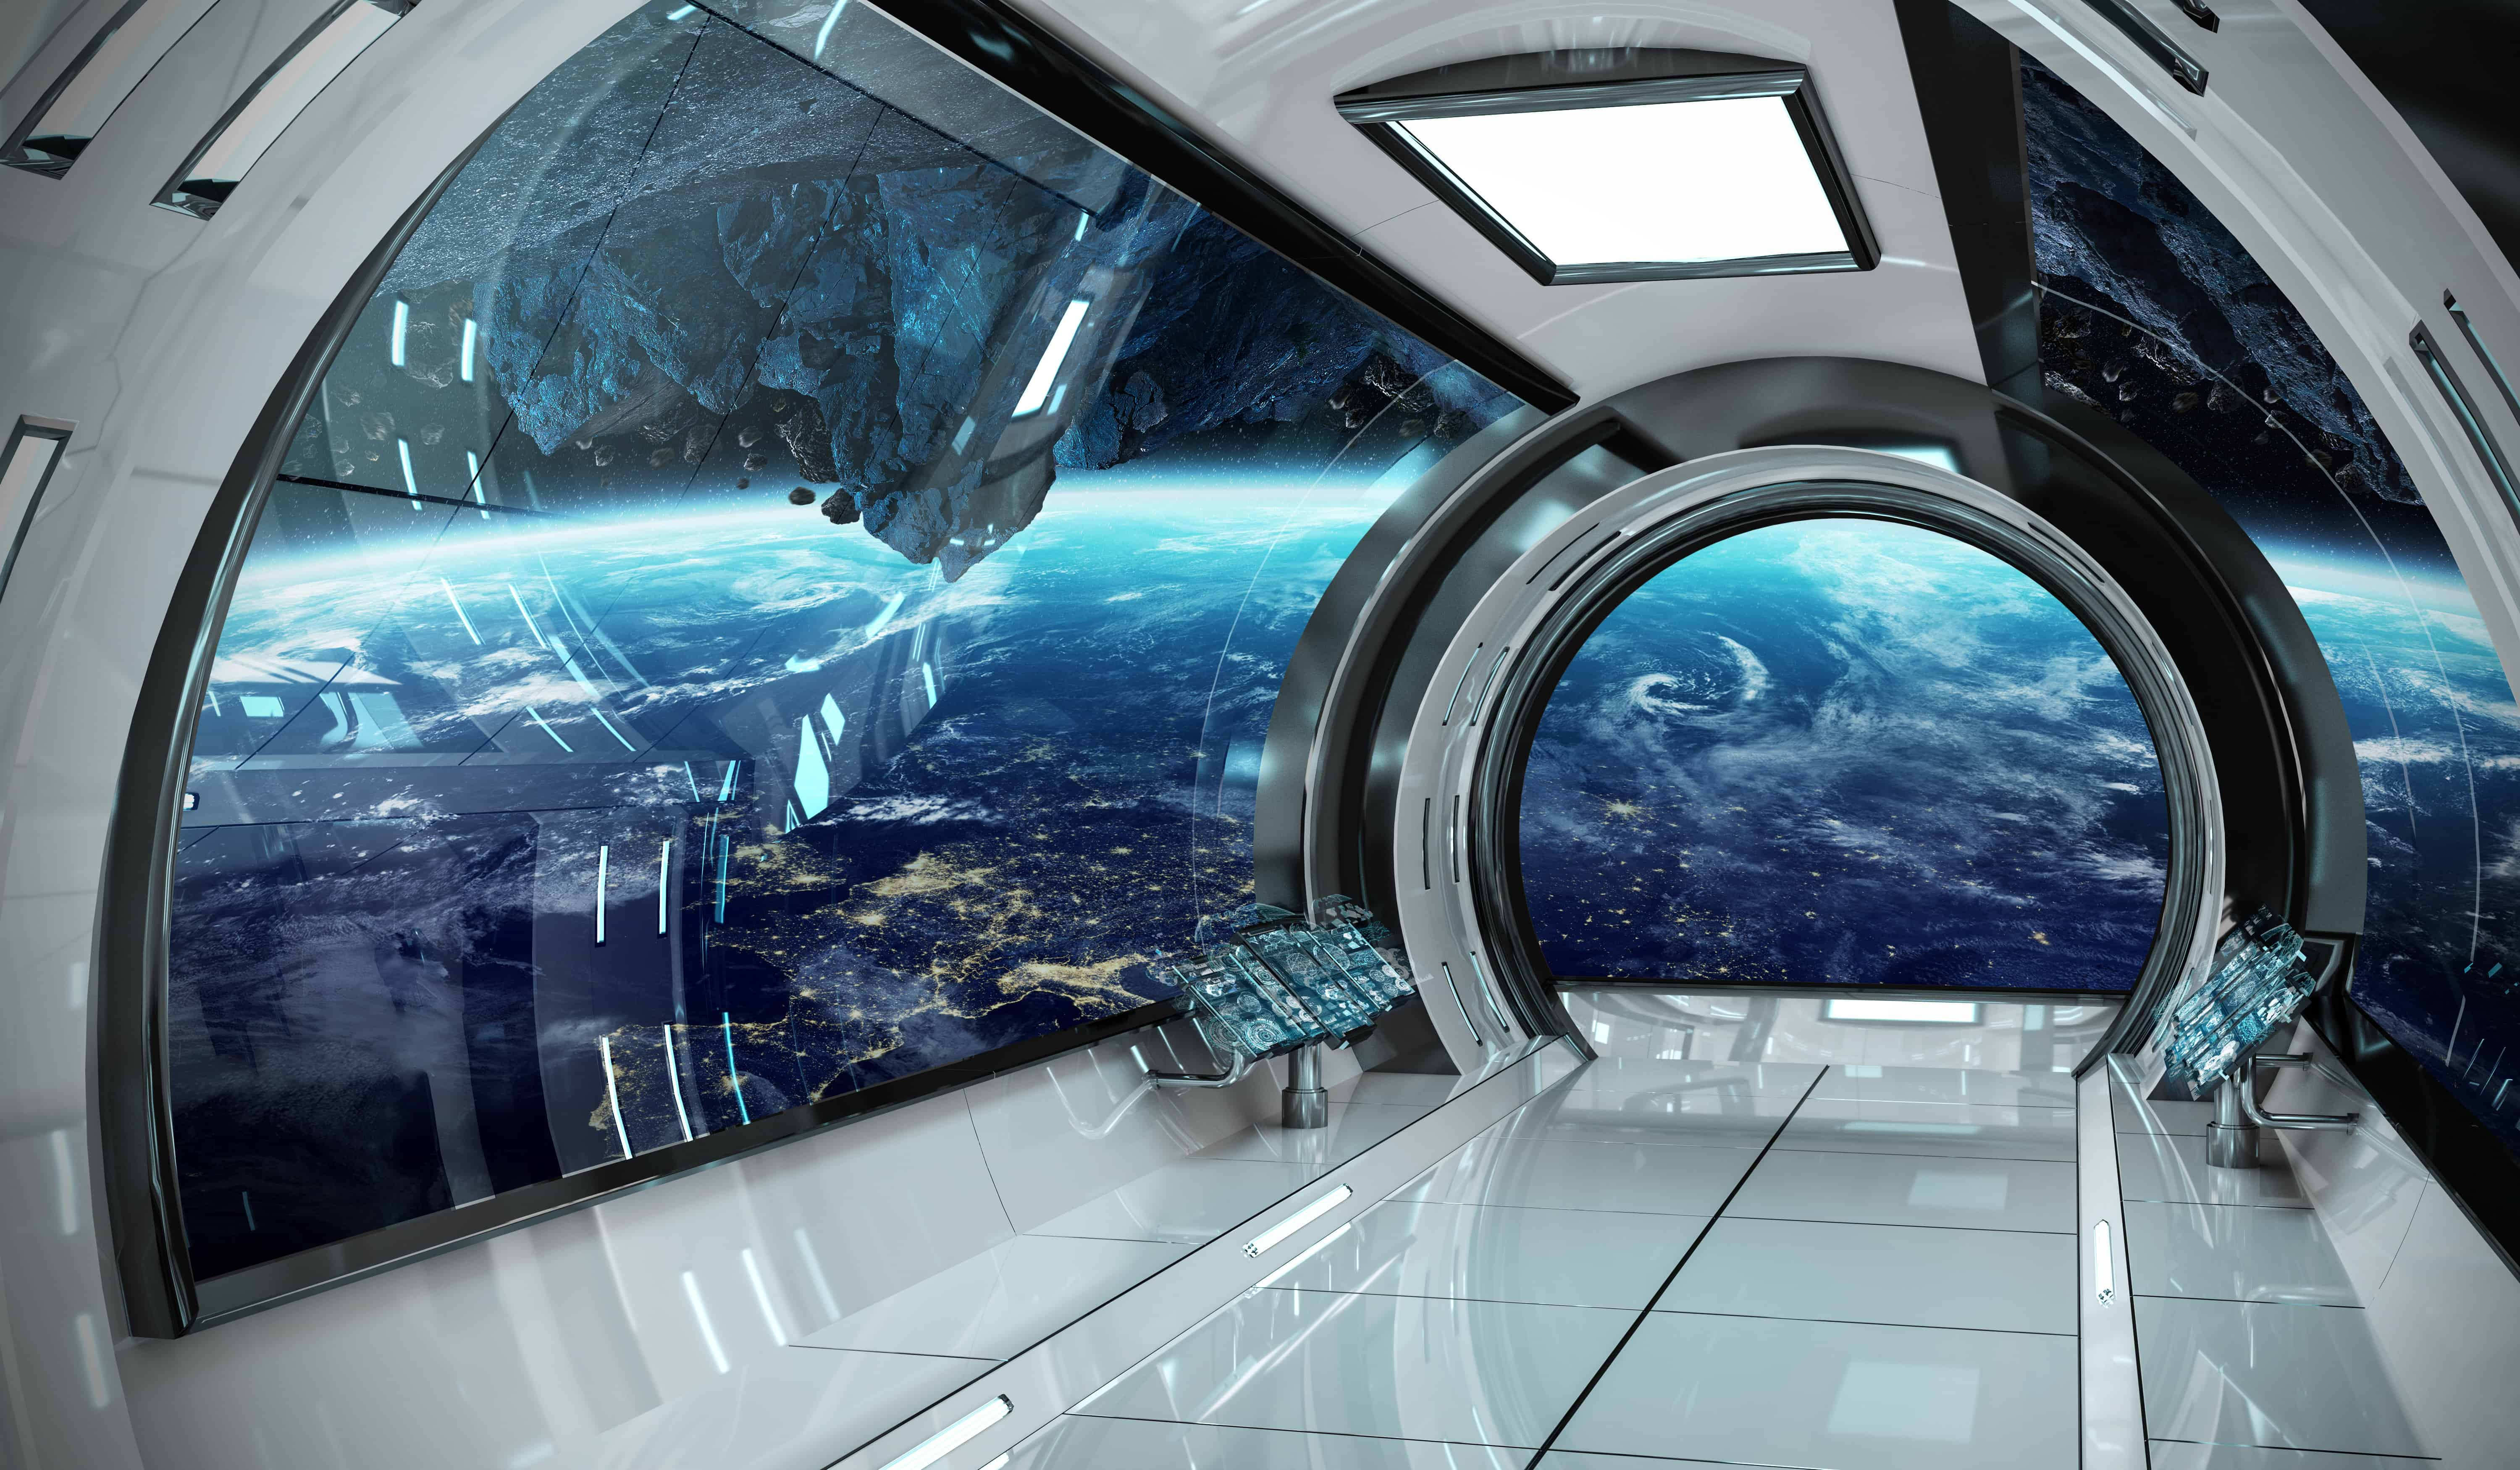 spacecraft, space travel, technology facts